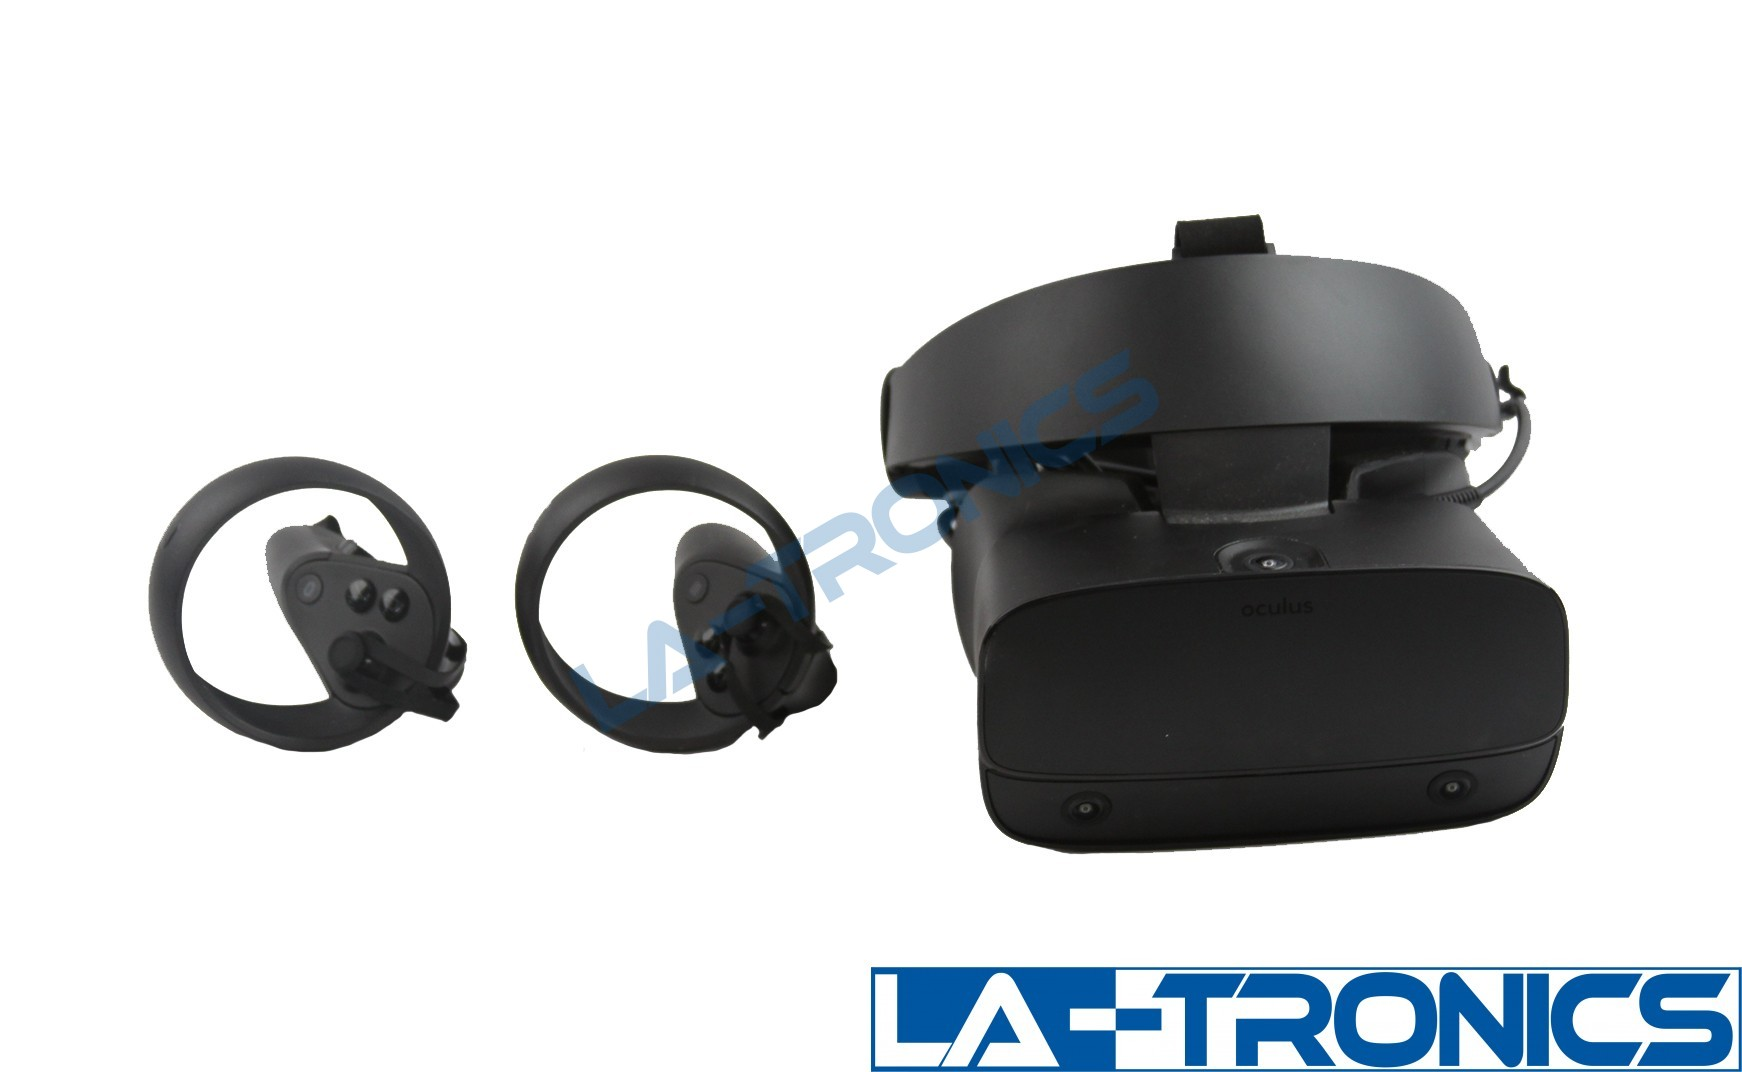 Lenovo Oculus Rift S PC-Powered VR Virtual Reality Gaming Headset - 301-00178-01